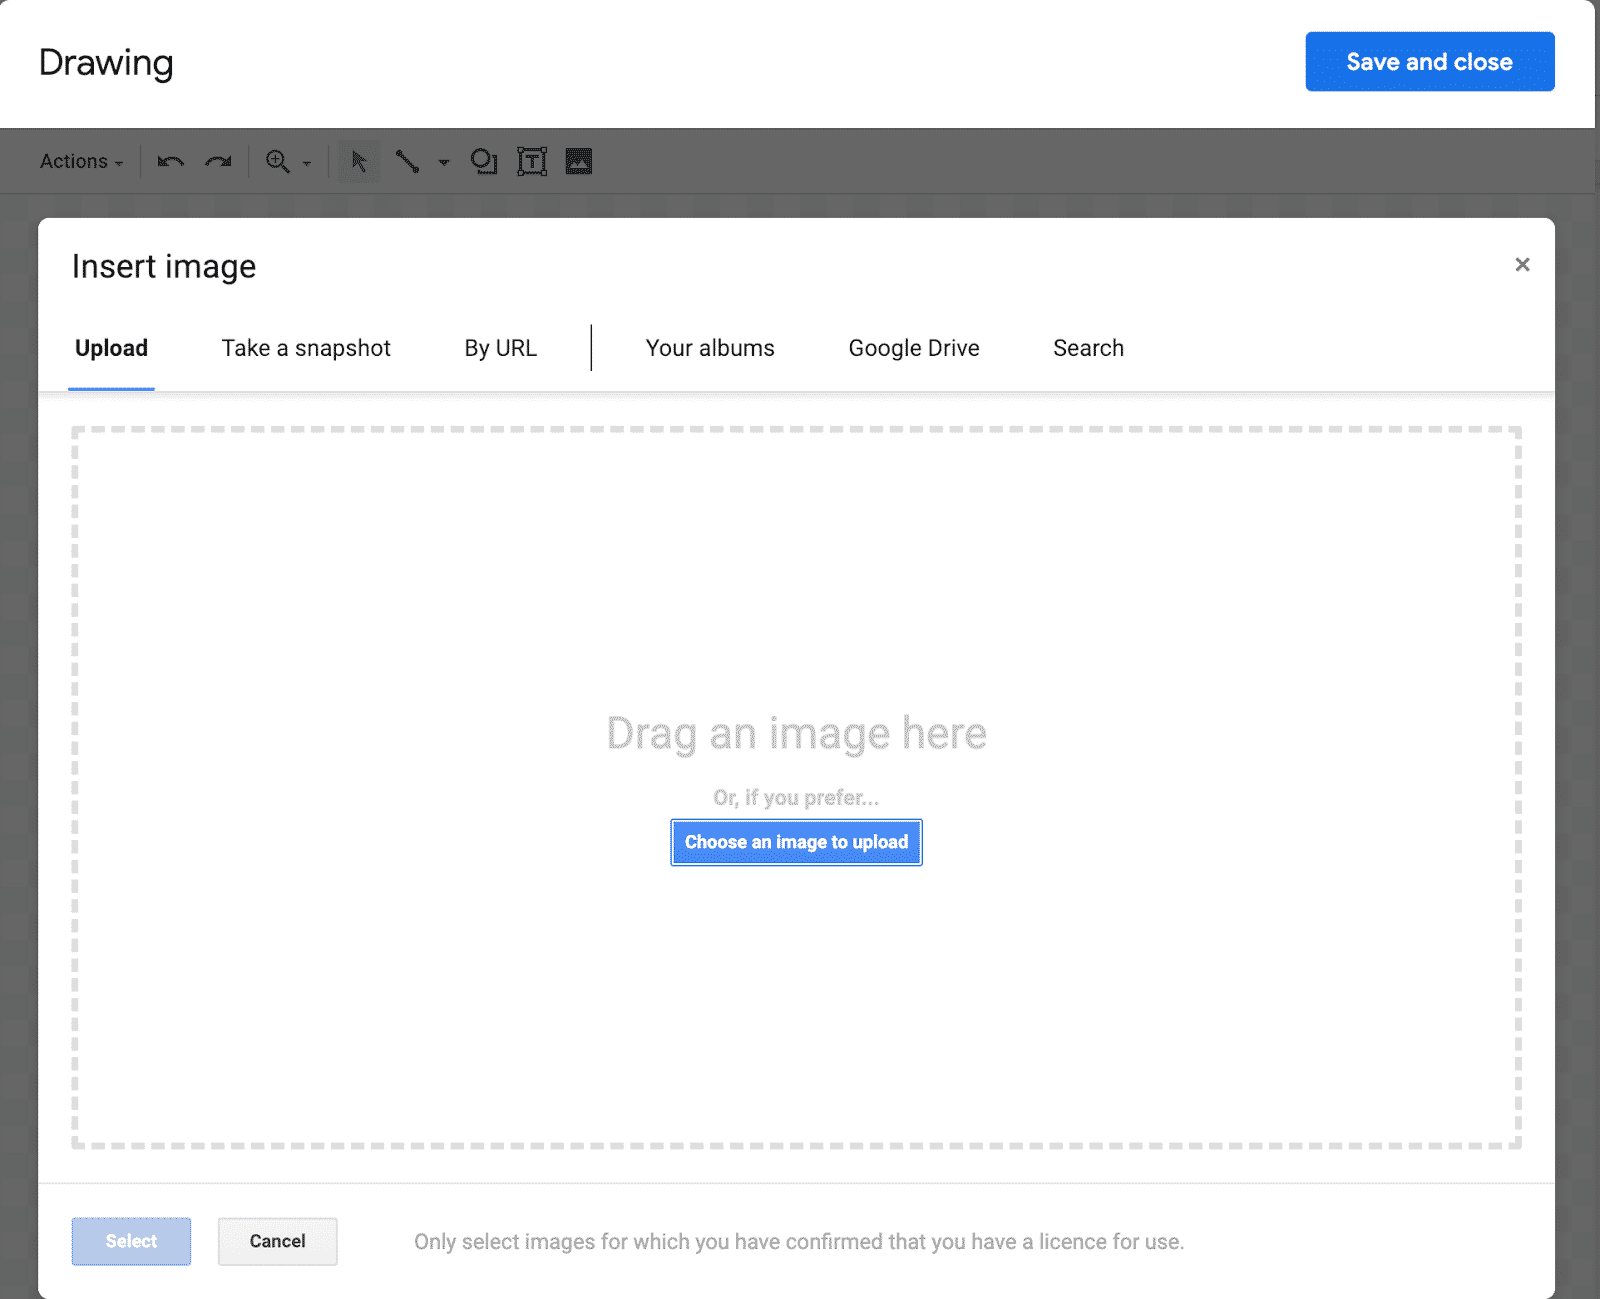 This is where you can find the option to upload an image.